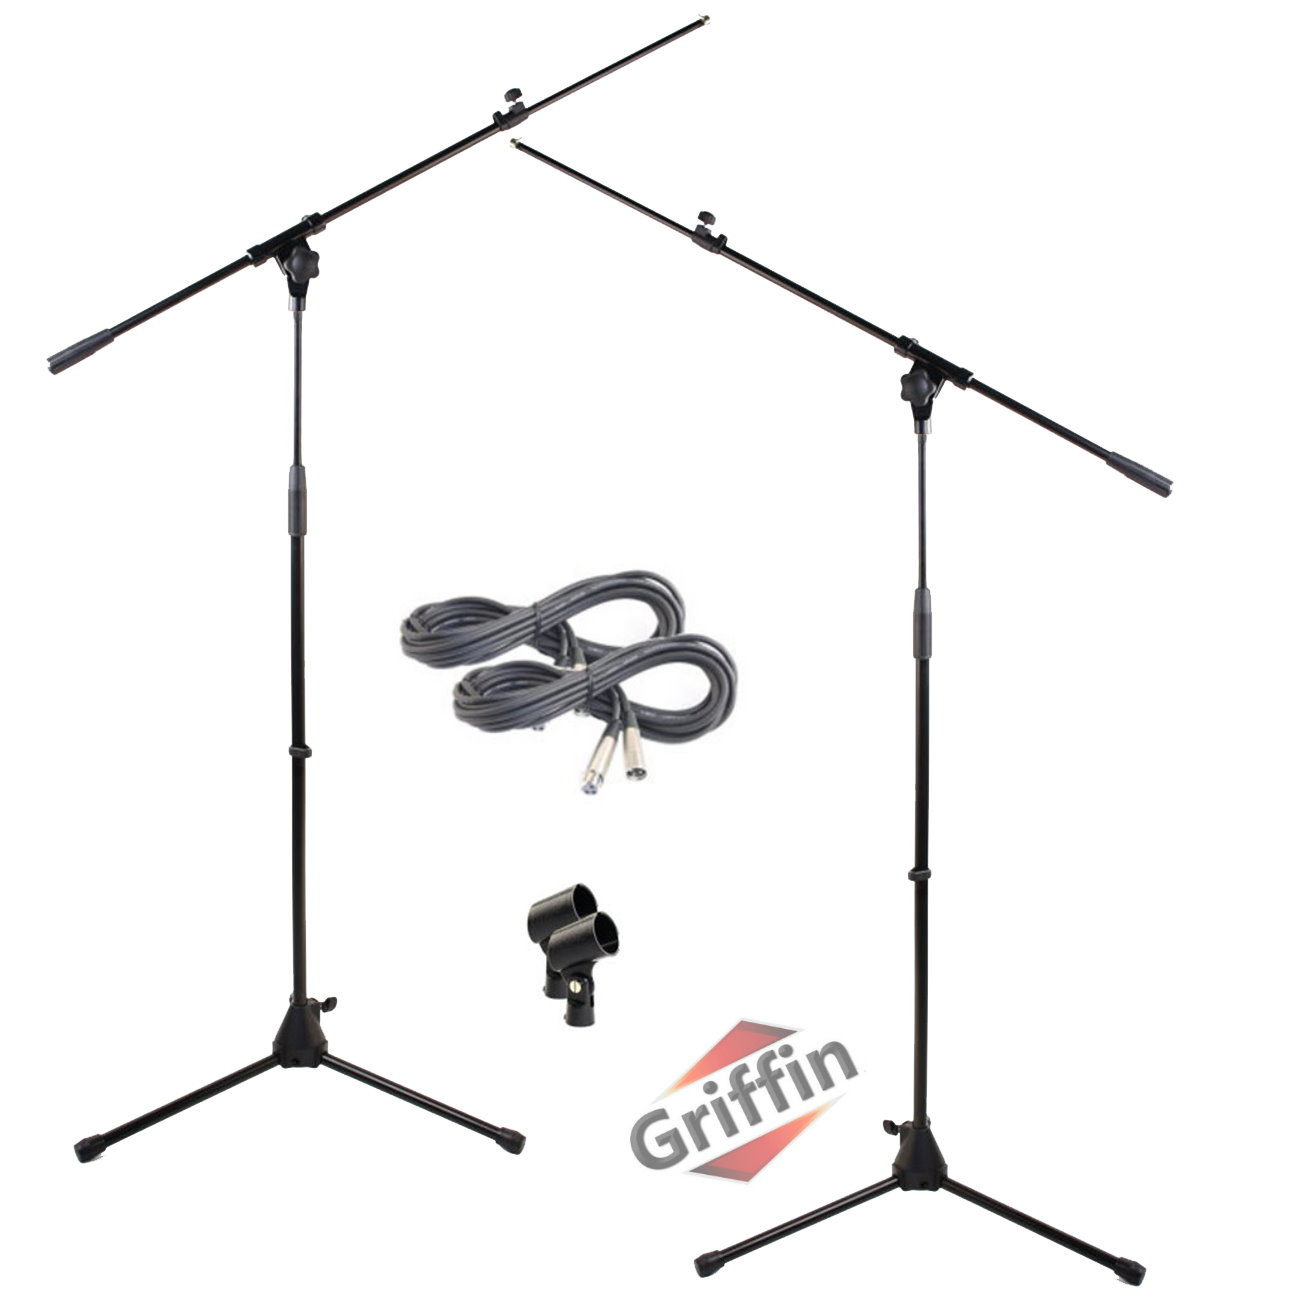 Tripod Microphone Boom Stand with XLR Mic Cable & Clip (Pack of 2) by Griffin | Telescoping Premium Quality for Studio, Karaoke, Live Performances, Conferences | 20 ft Pro Audio Mic 3-Pin Cord Patch